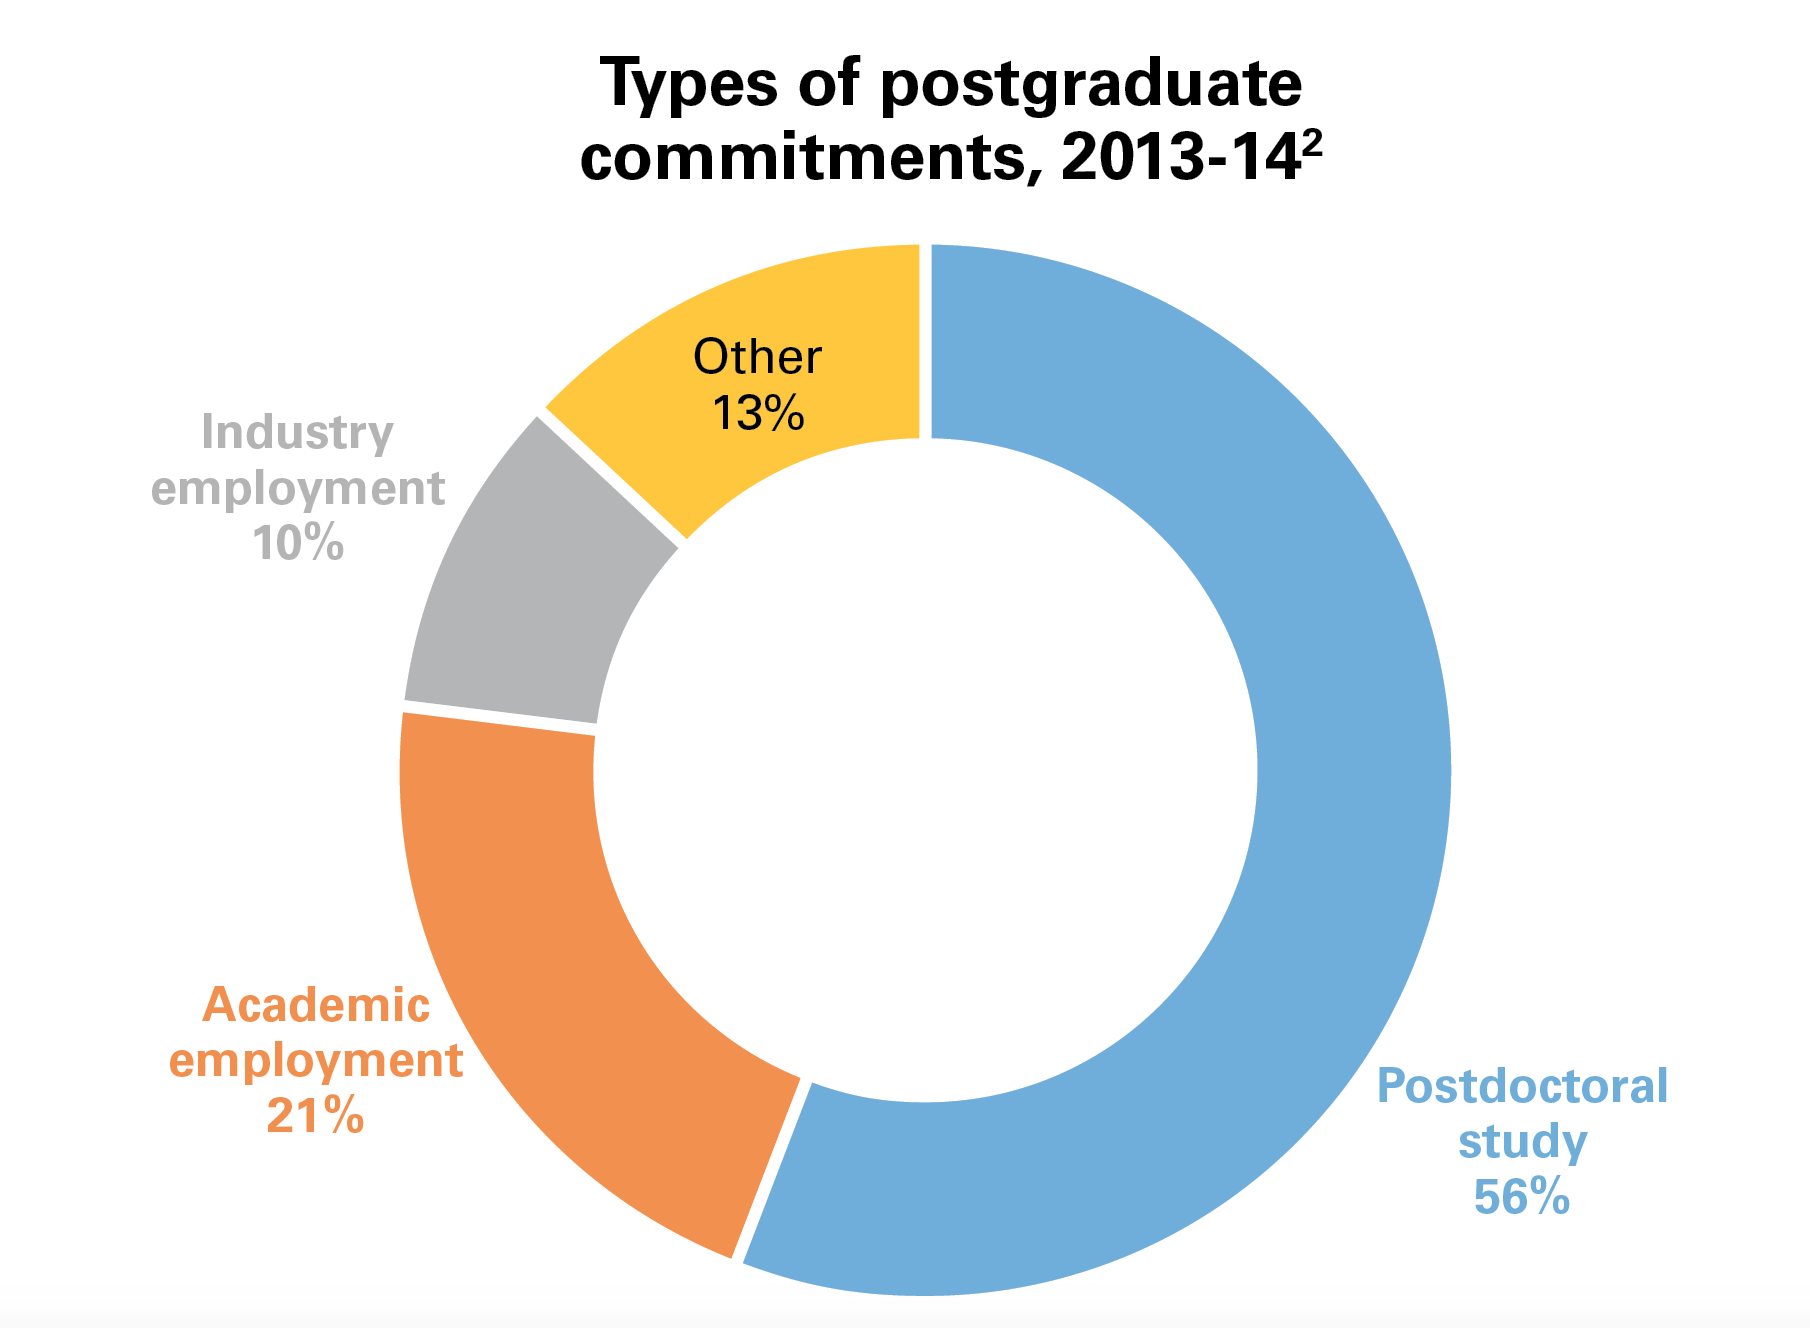 Apa centers 2016 apa annual report types of postgraduate commitments 2013 14 nvjuhfo Choice Image